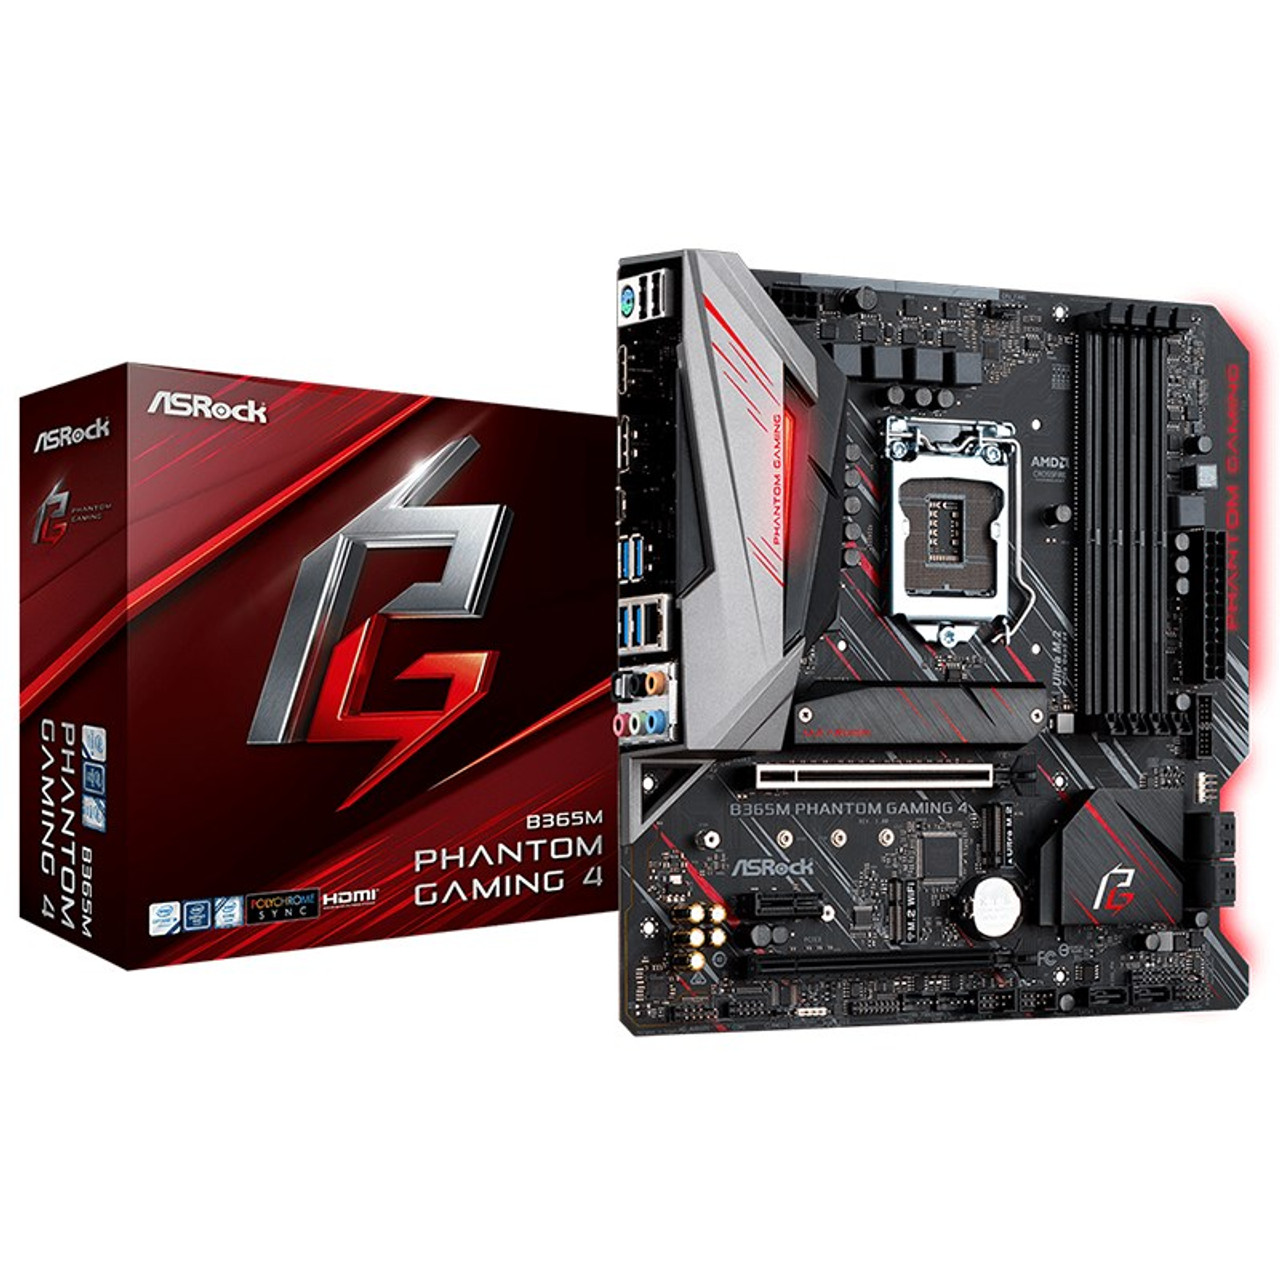 Image for ASRock B365M Phantom Gaming 4 LGA 1151 M-ATX Motherboard CX Computer Superstore